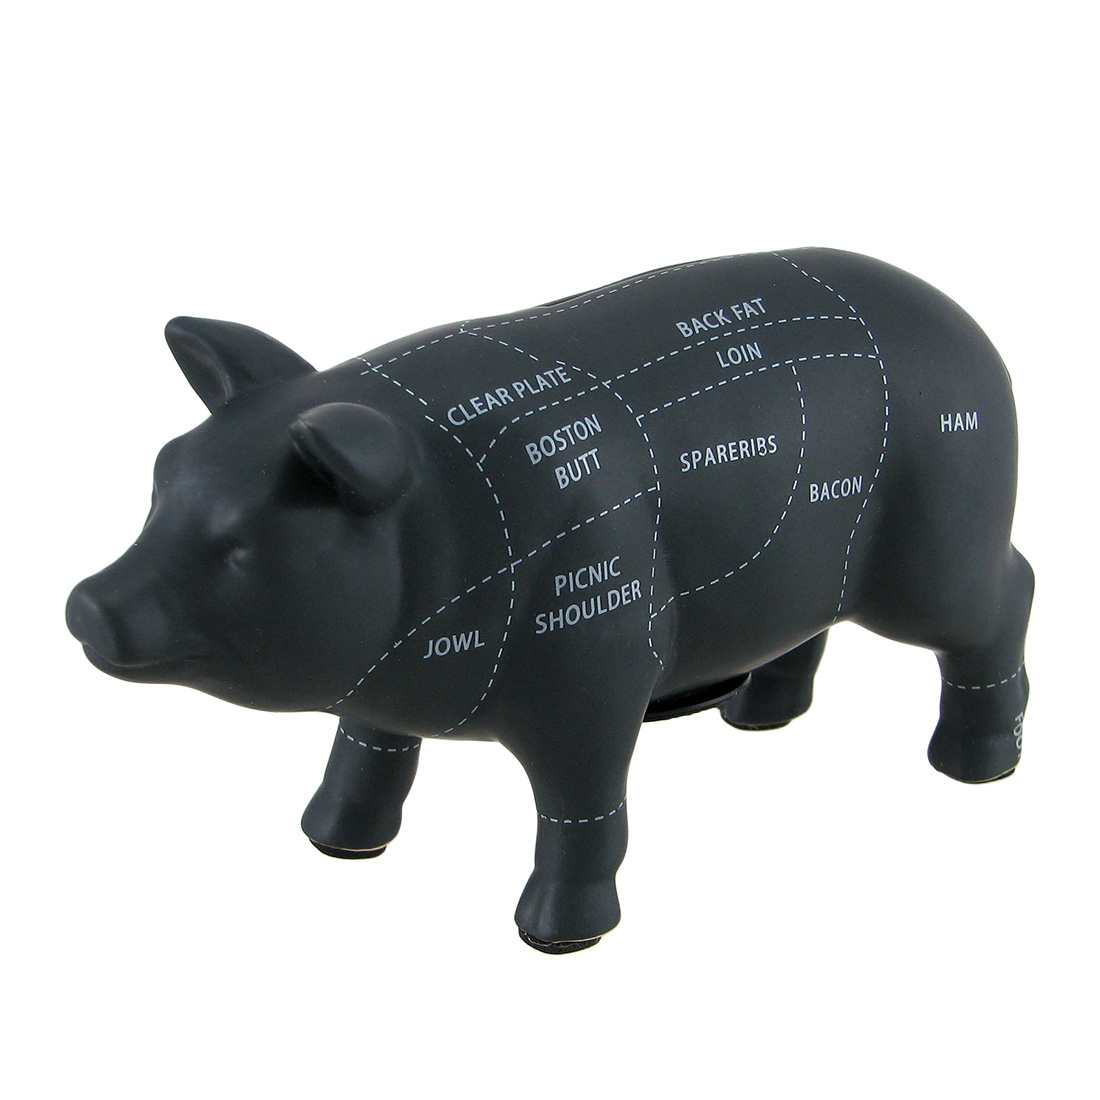 Large Black Ceramic Pig Shaped Coin Bank Butcher Chart Piggy Bank 7 1 4 Inch by Contrast Inc.